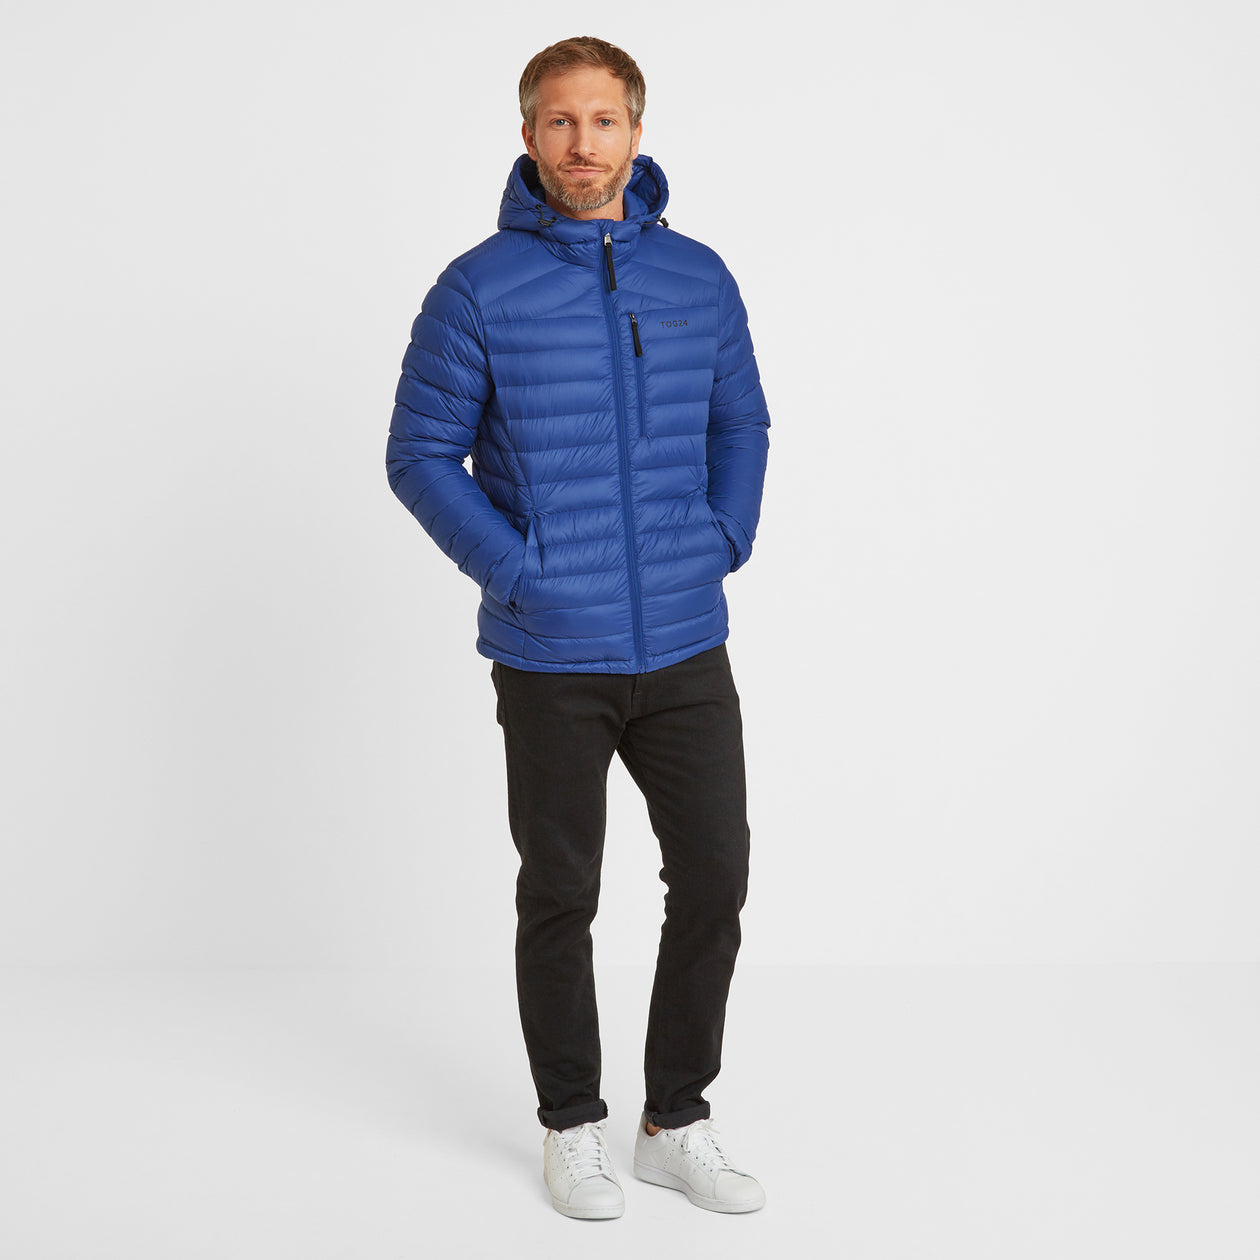 Drax Mens Hooded Down Jacket - Royal Blue image 4